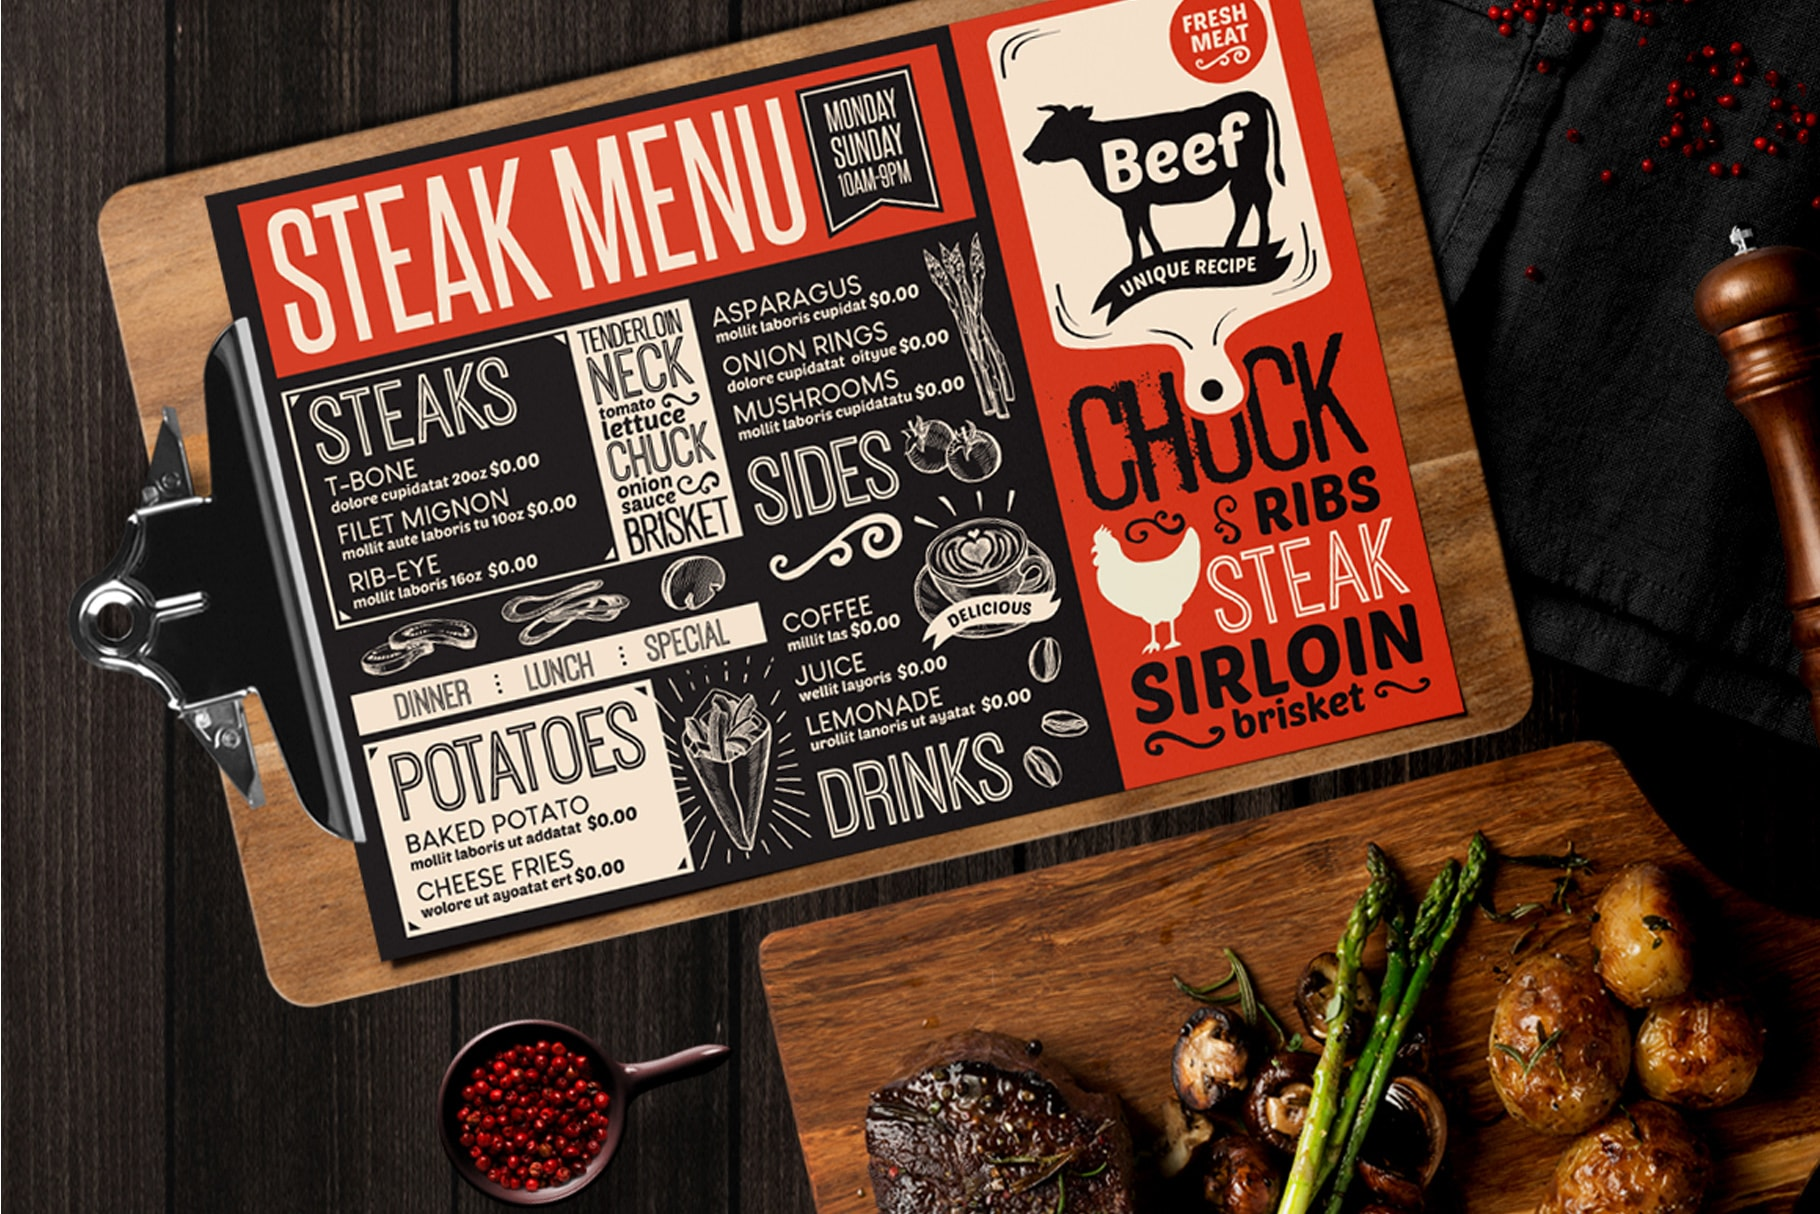 steak burger menu template design for restaurant with hand drawn illustrations